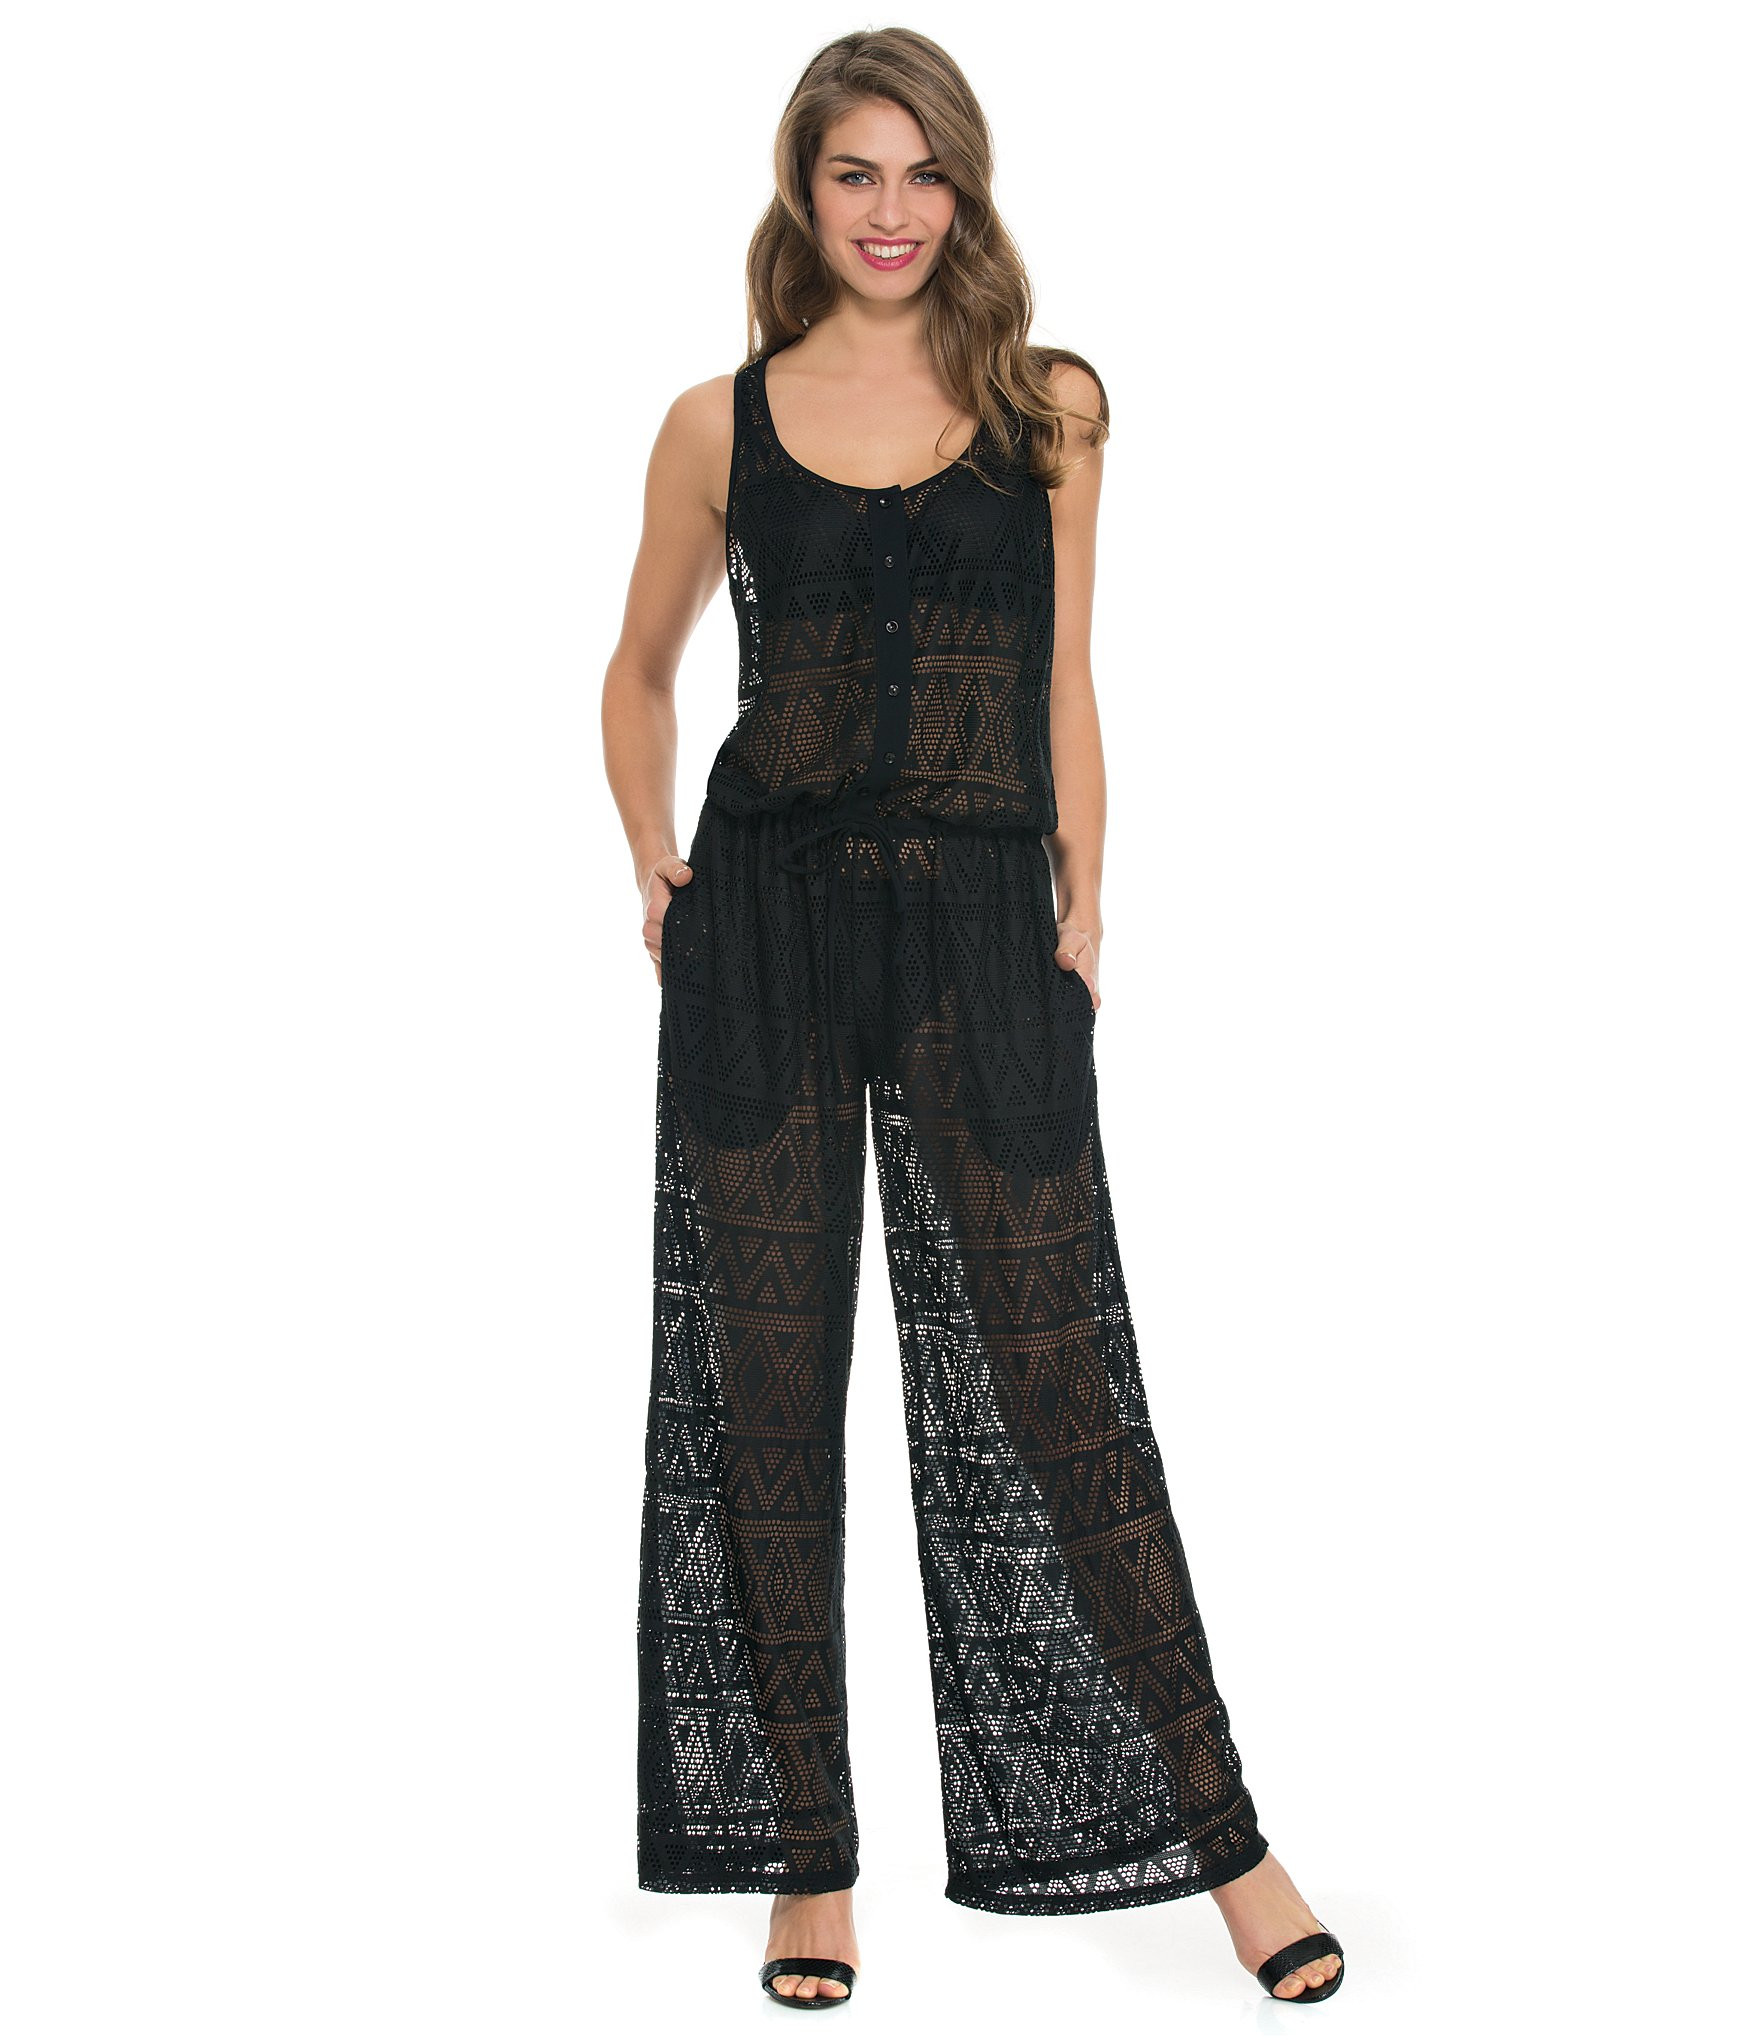 Crochet Jumpsuit Inspirational Gottex Crochet Jumpsuit Cover Up In Black Of Amazing 49 Pictures Crochet Jumpsuit